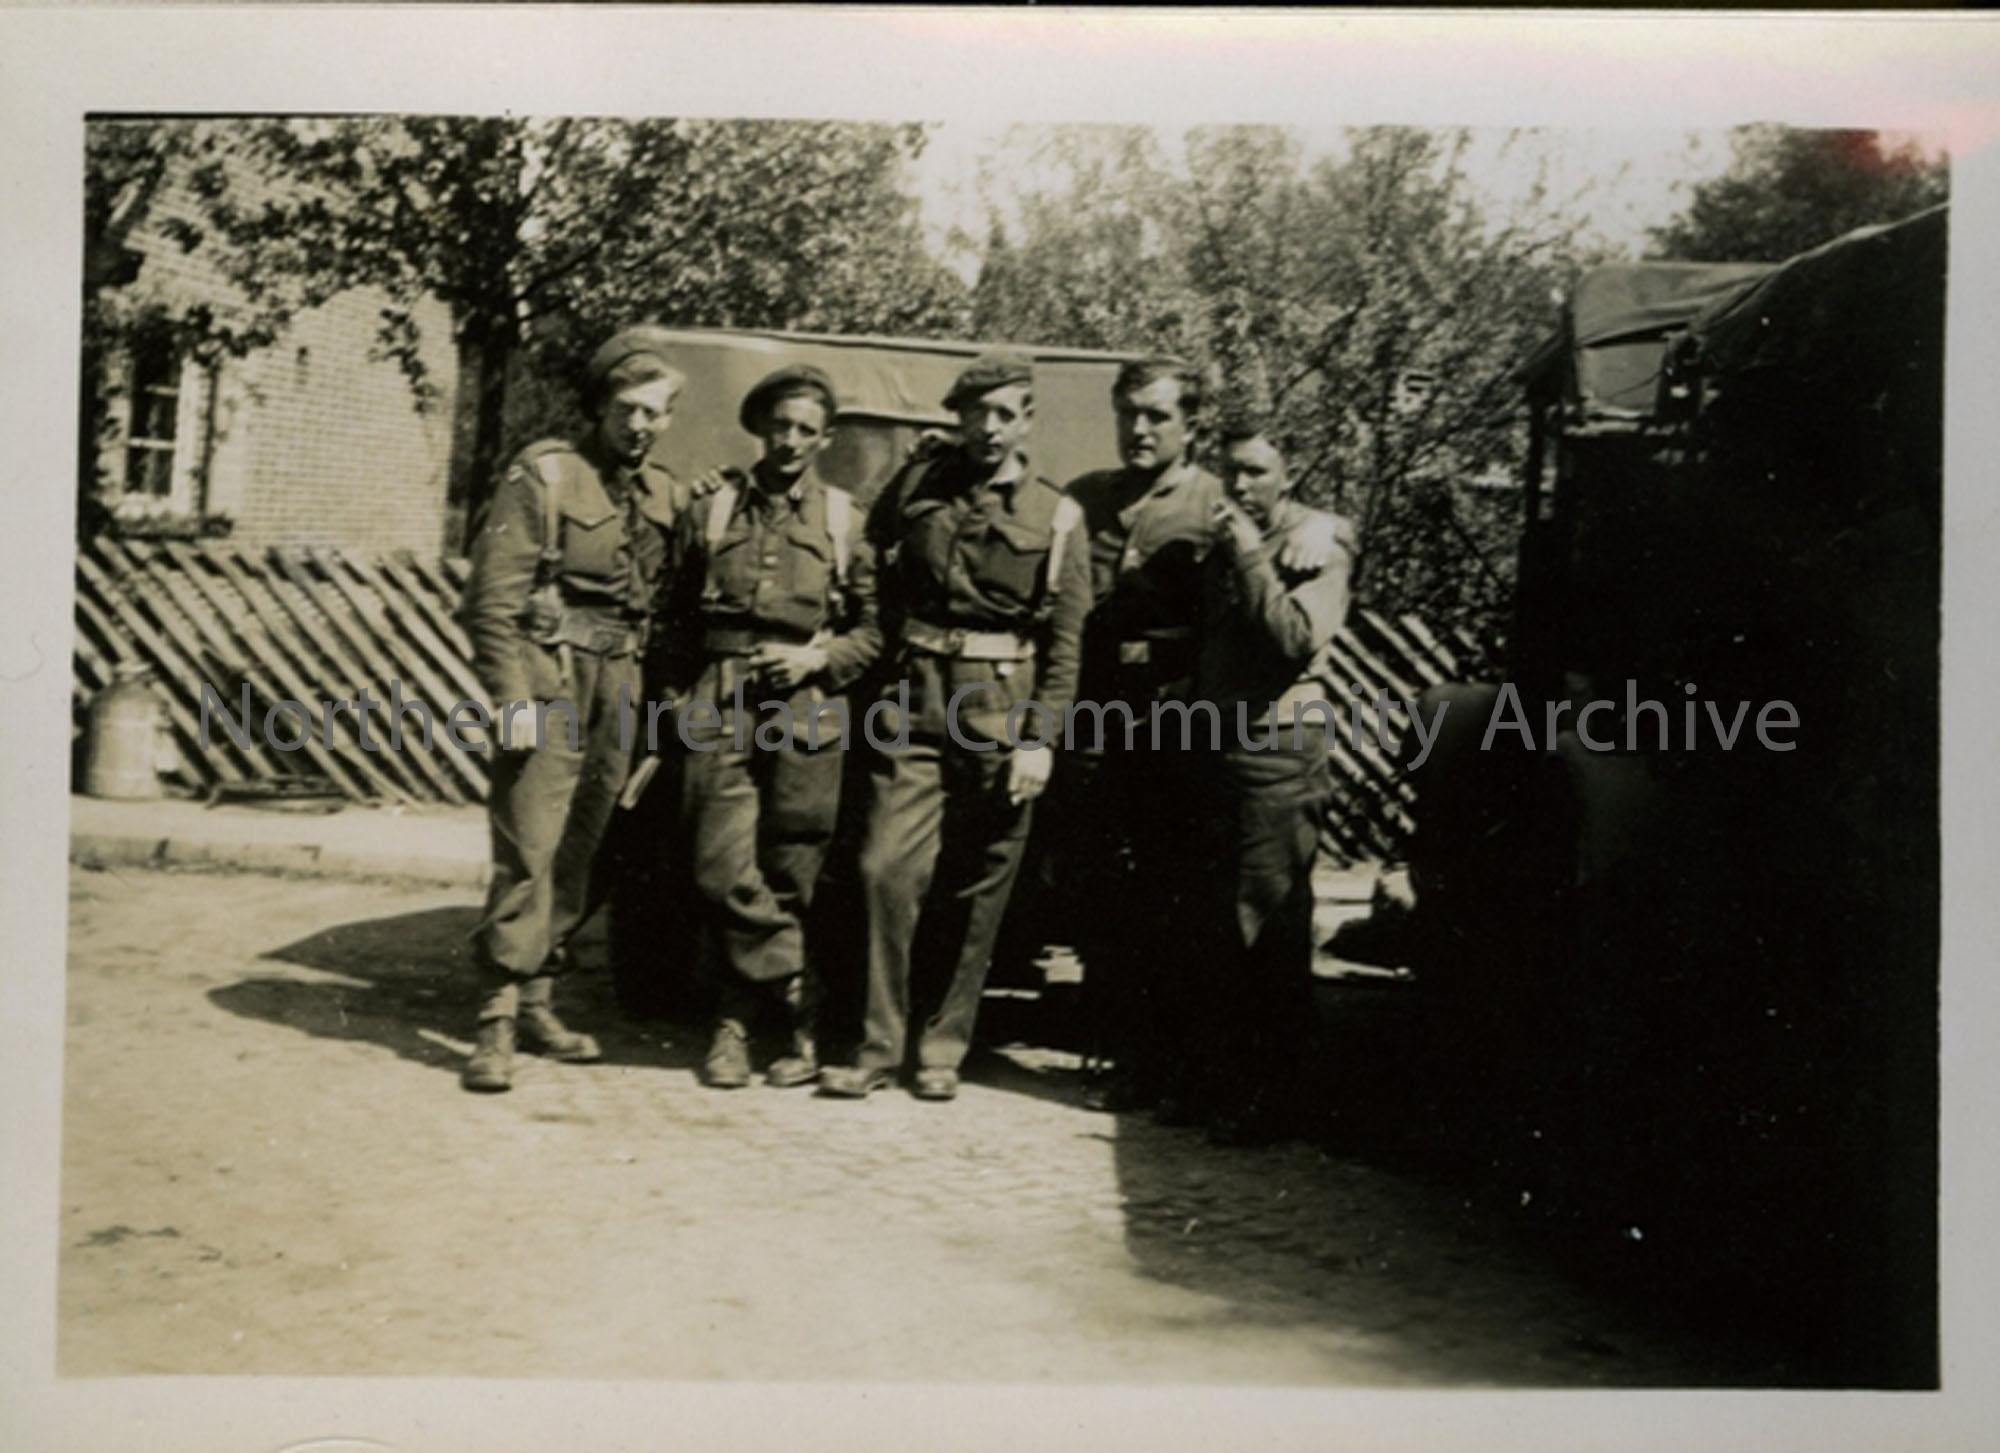 Group of soldier in Damme, Germany